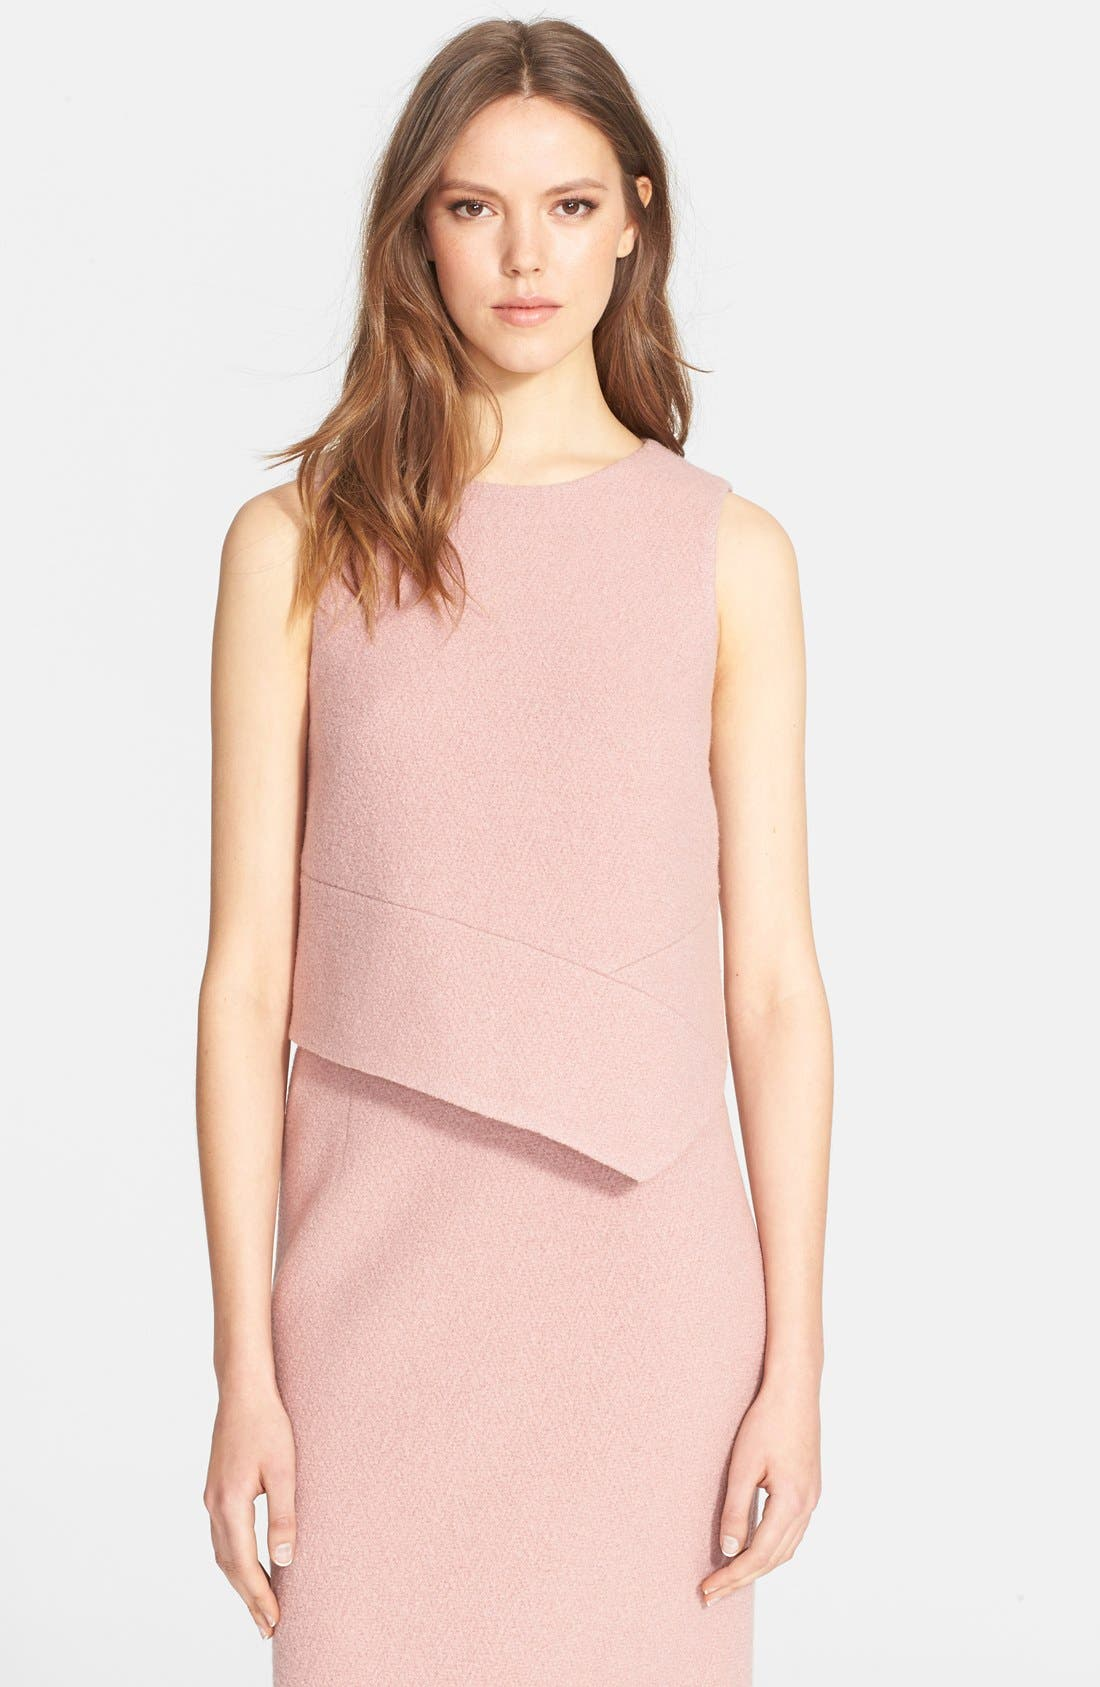 Alternate Image 1 Selected - Tibi Bouclé Knit Sleeveless Top